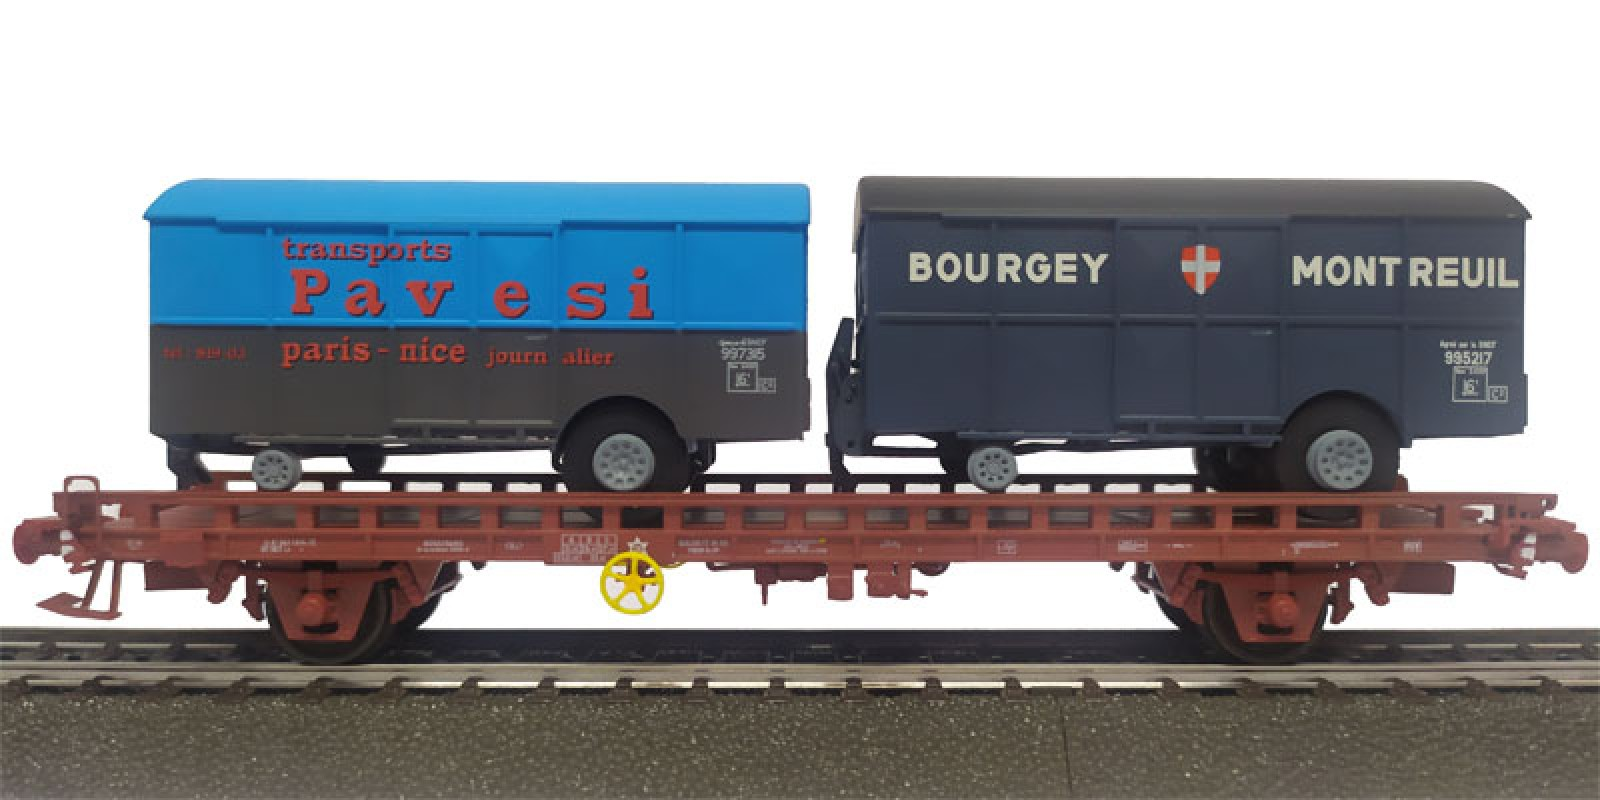 REWB642 Double carrier wagon loaded with box trailer of the SNCF